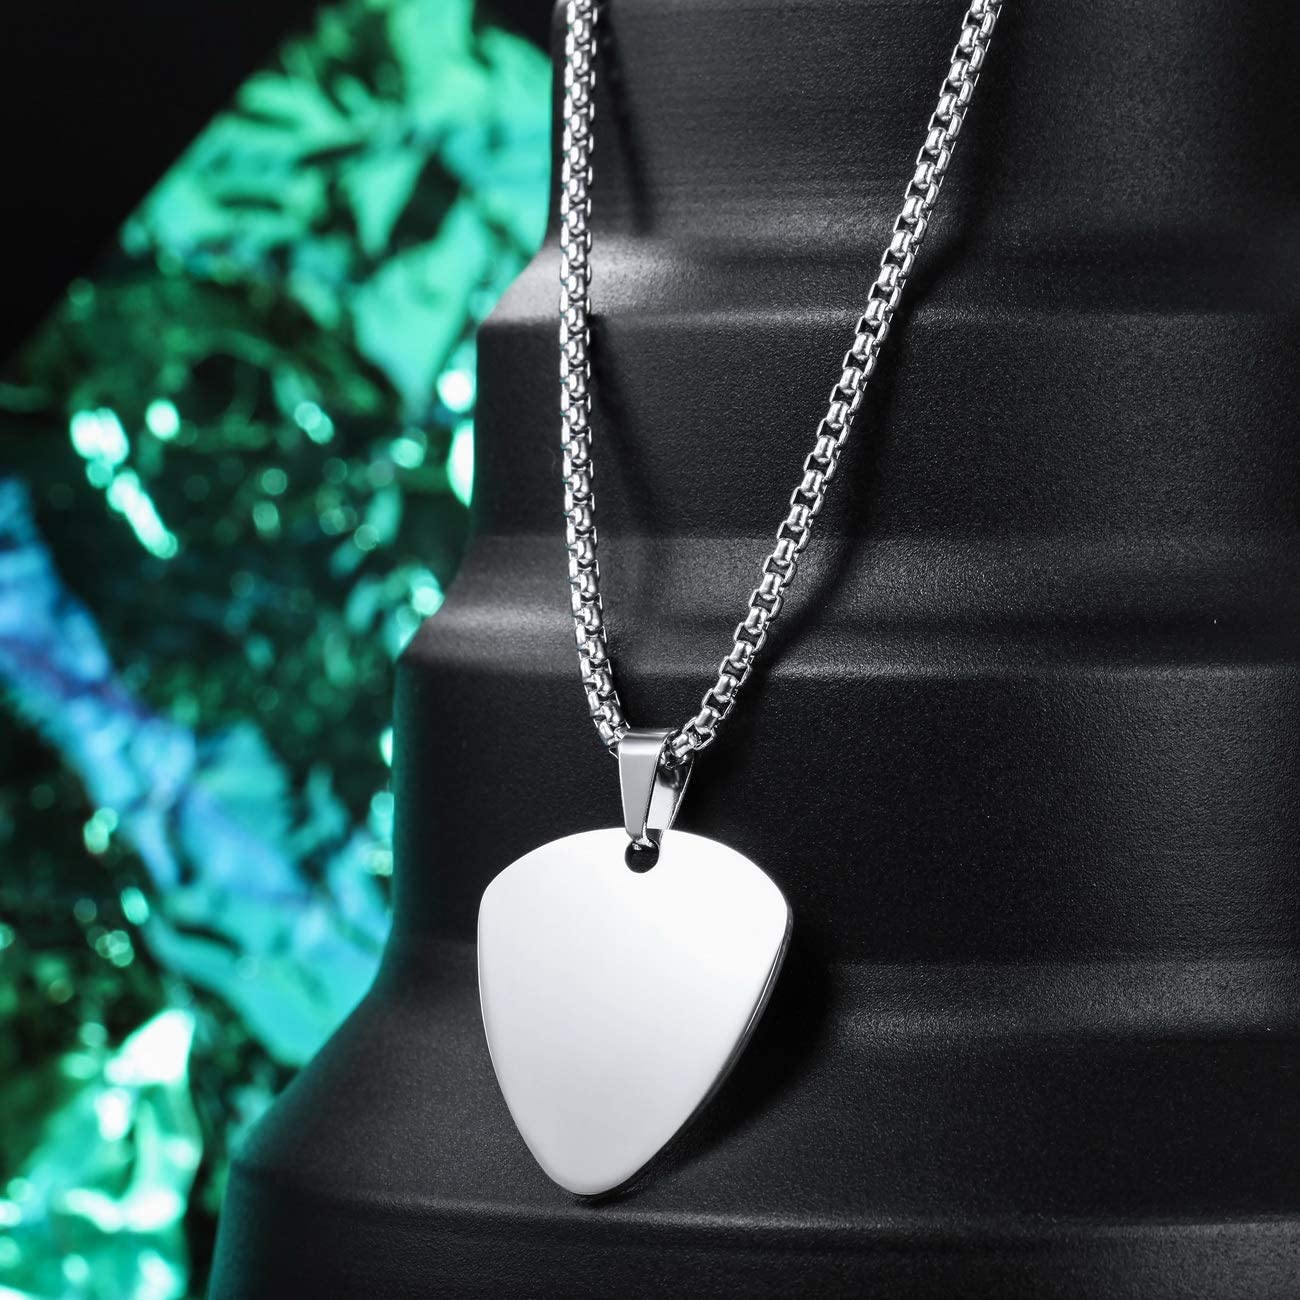 Buy MeMeDIY Personalized Guitar Pick Necklace Customize Chains for Men  Women Boys Girls Engraving Rock Pendant Gifts for Music Lovers Stainless  Steel Cool Jewelry Online in Taiwan. B071D8S8Q4